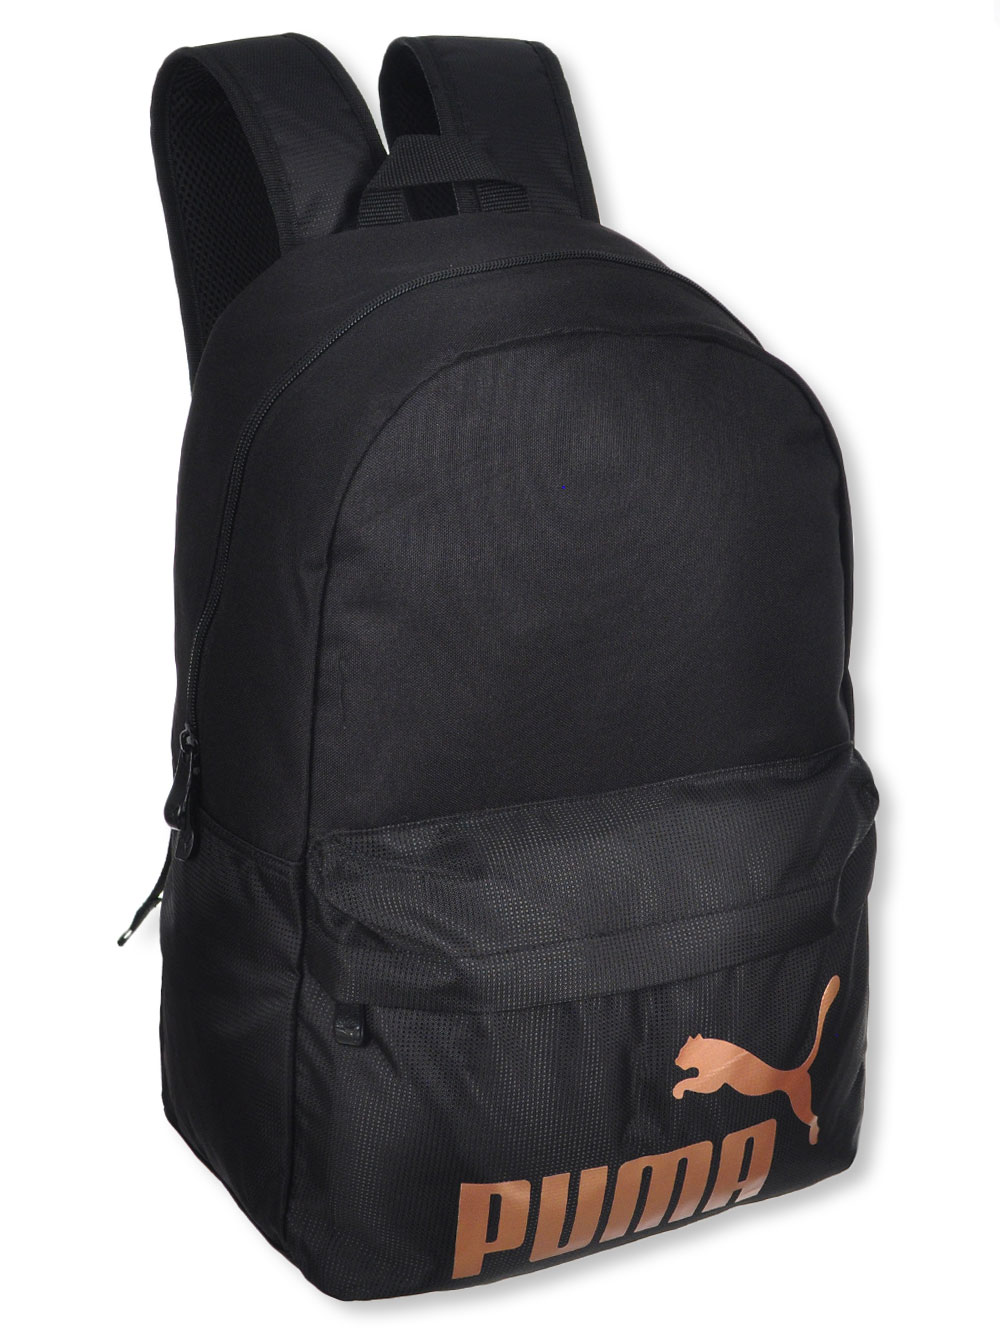 Boys Black and Gold Backpacks